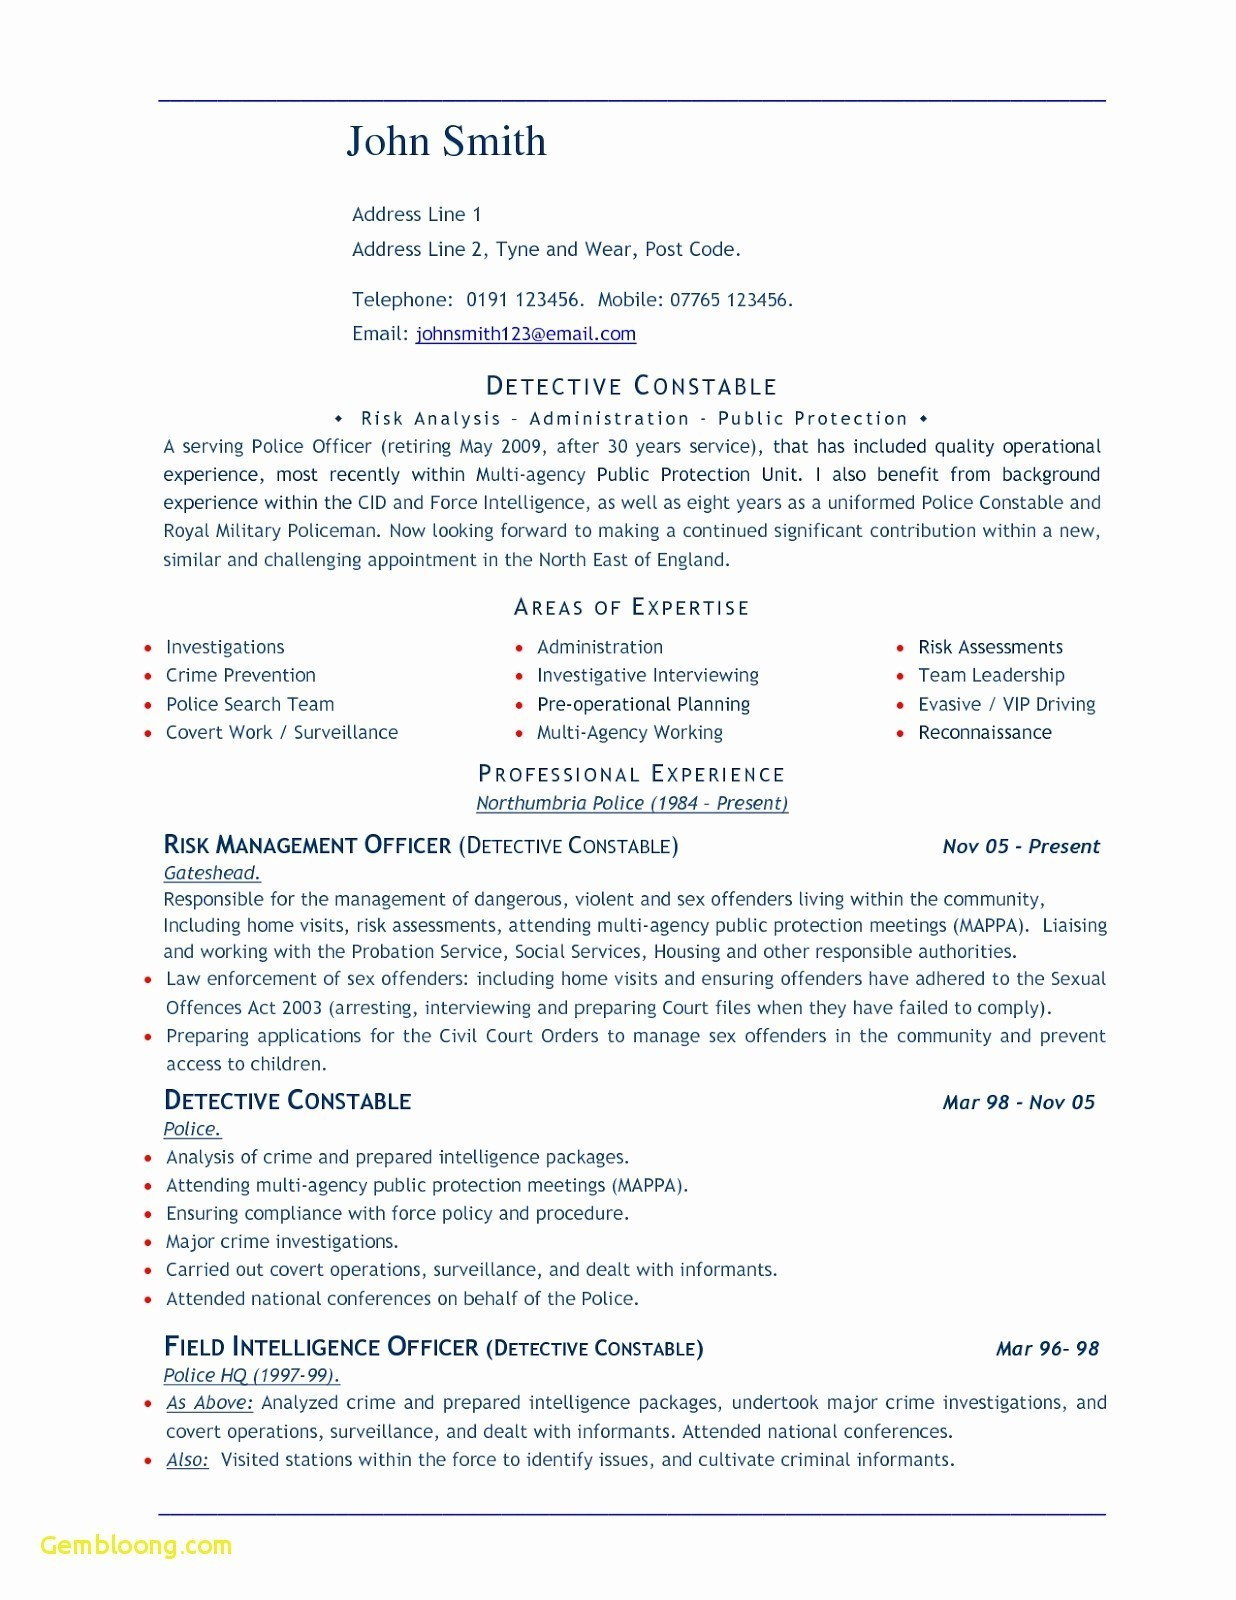 Police Resume Template - Resume Microsoft Word New Best Federal Government Resume Template